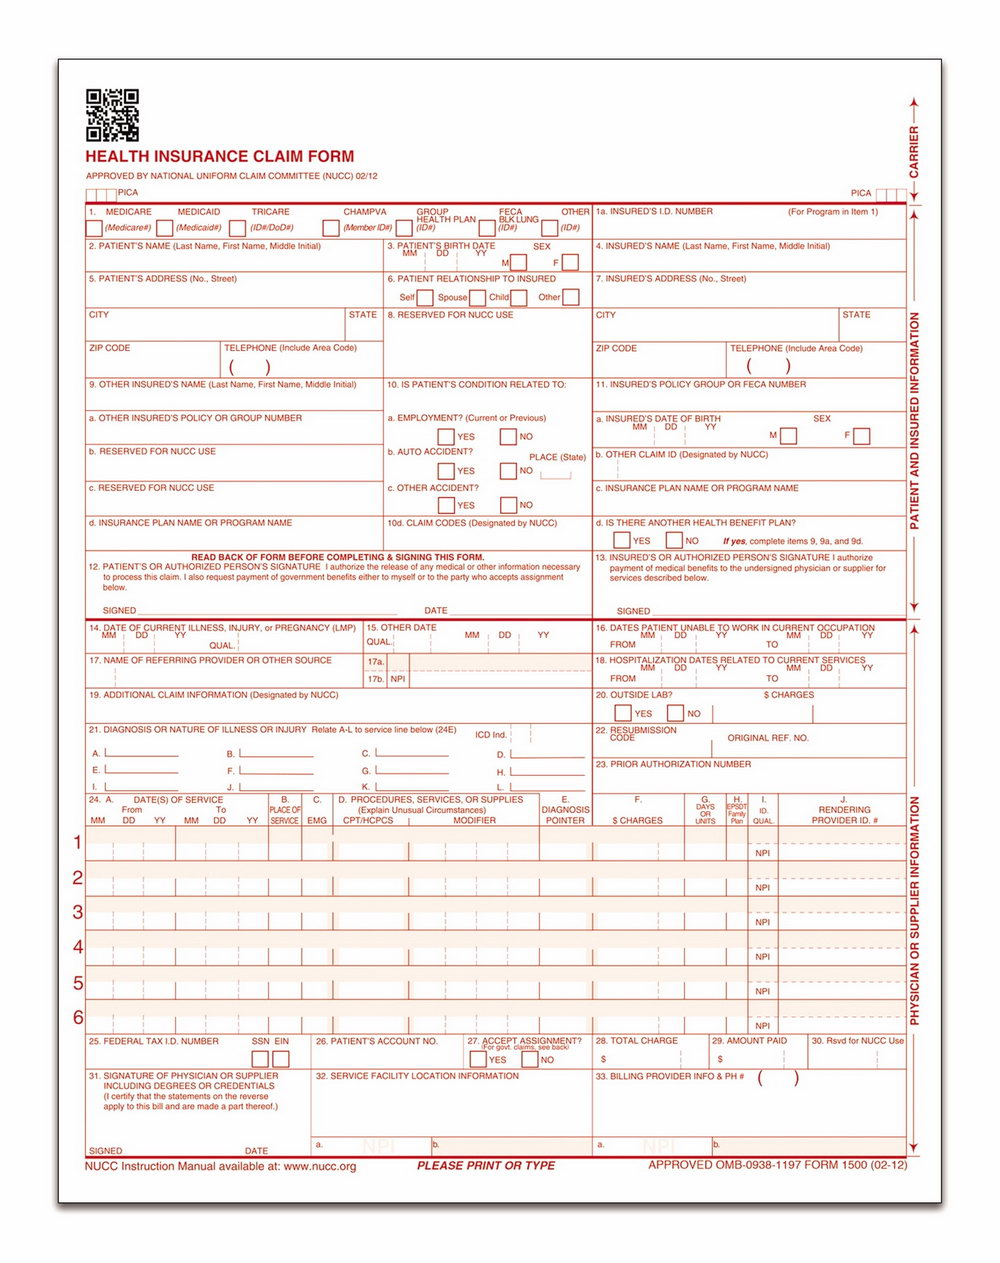 Health Insurance Claim Form 1500 Filled Out